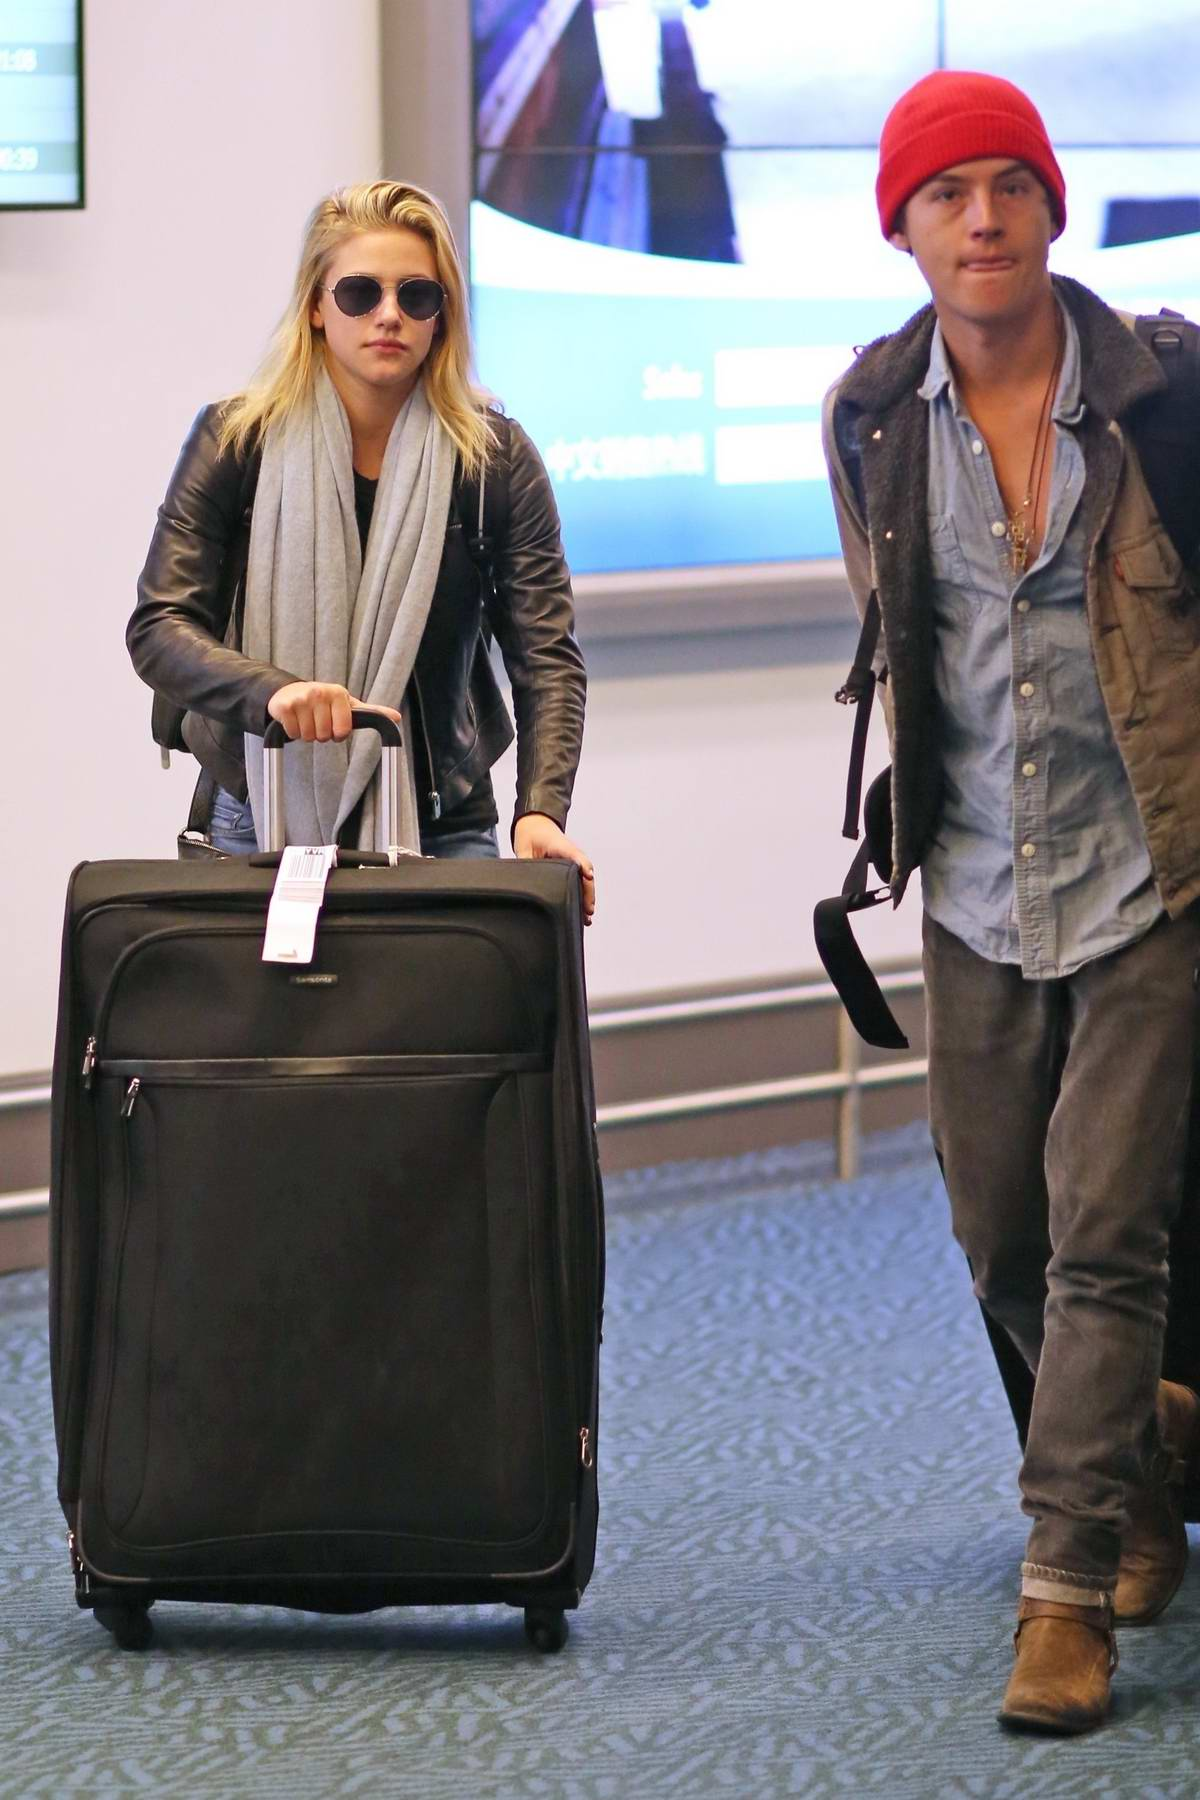 Lili reinhart archives celebsfirst lili reinhart and cole sprouse were spotted arriving back in vancouver canada kristyandbryce Choice Image